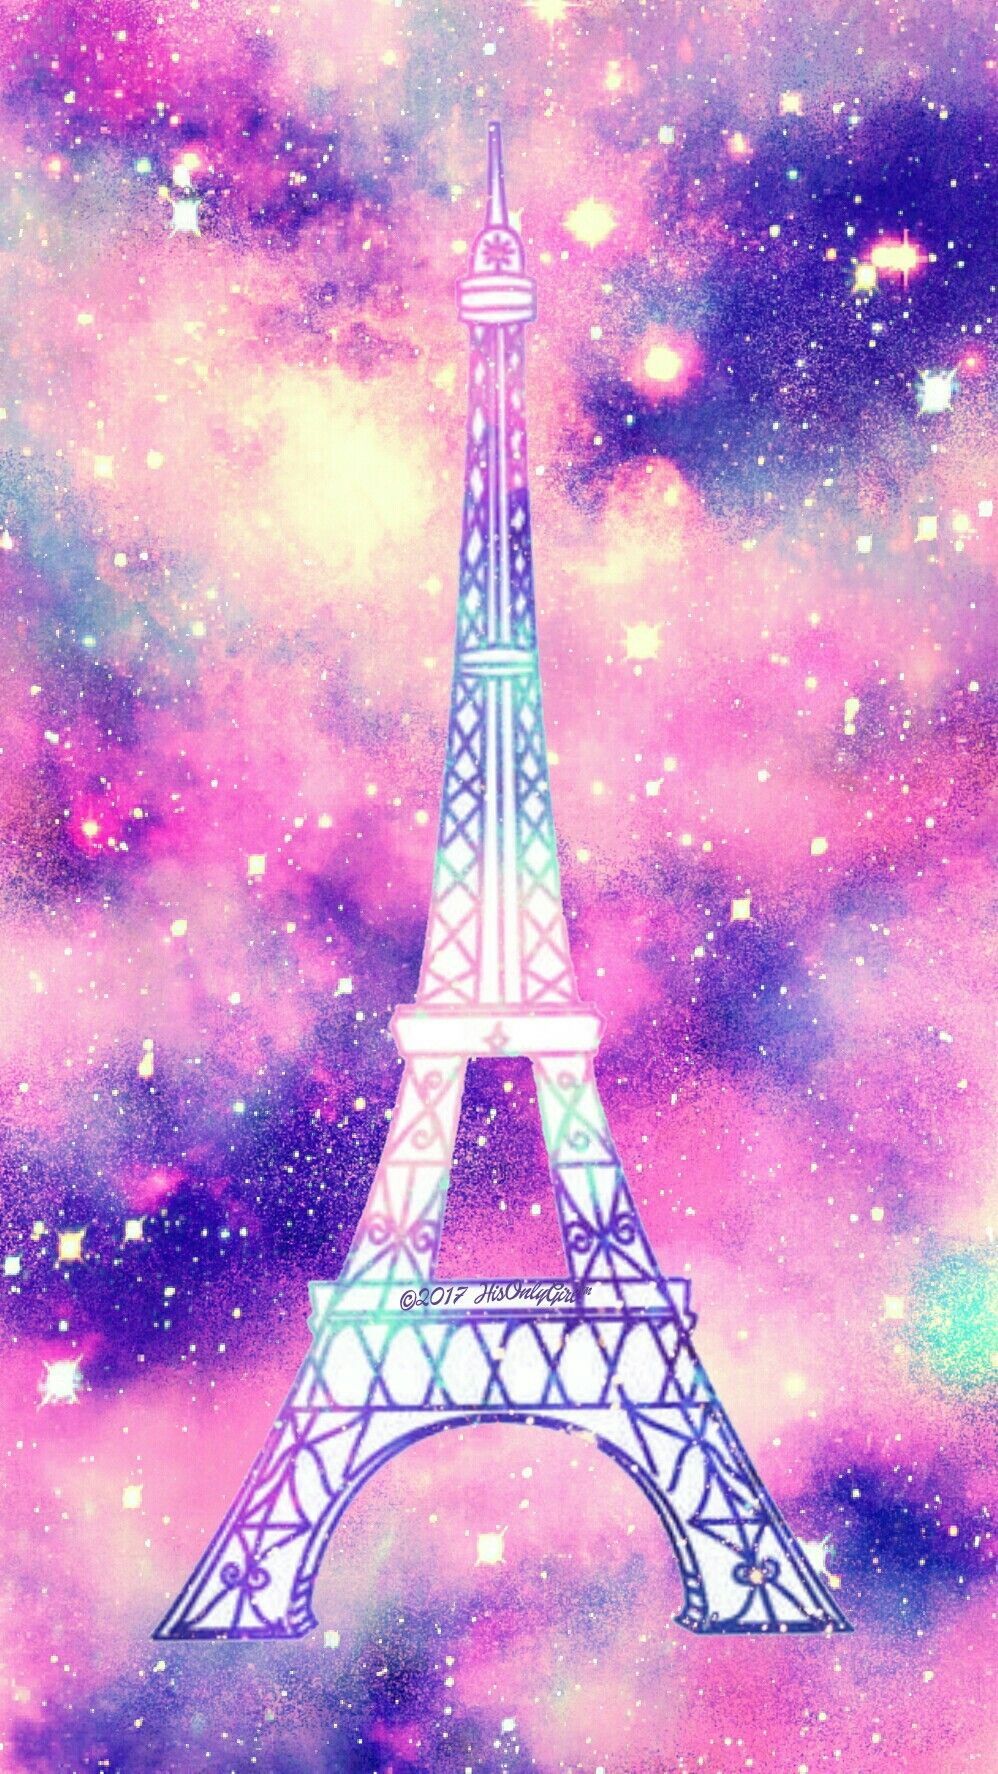 Eiffel Tower galaxy wallpaper I created for the app